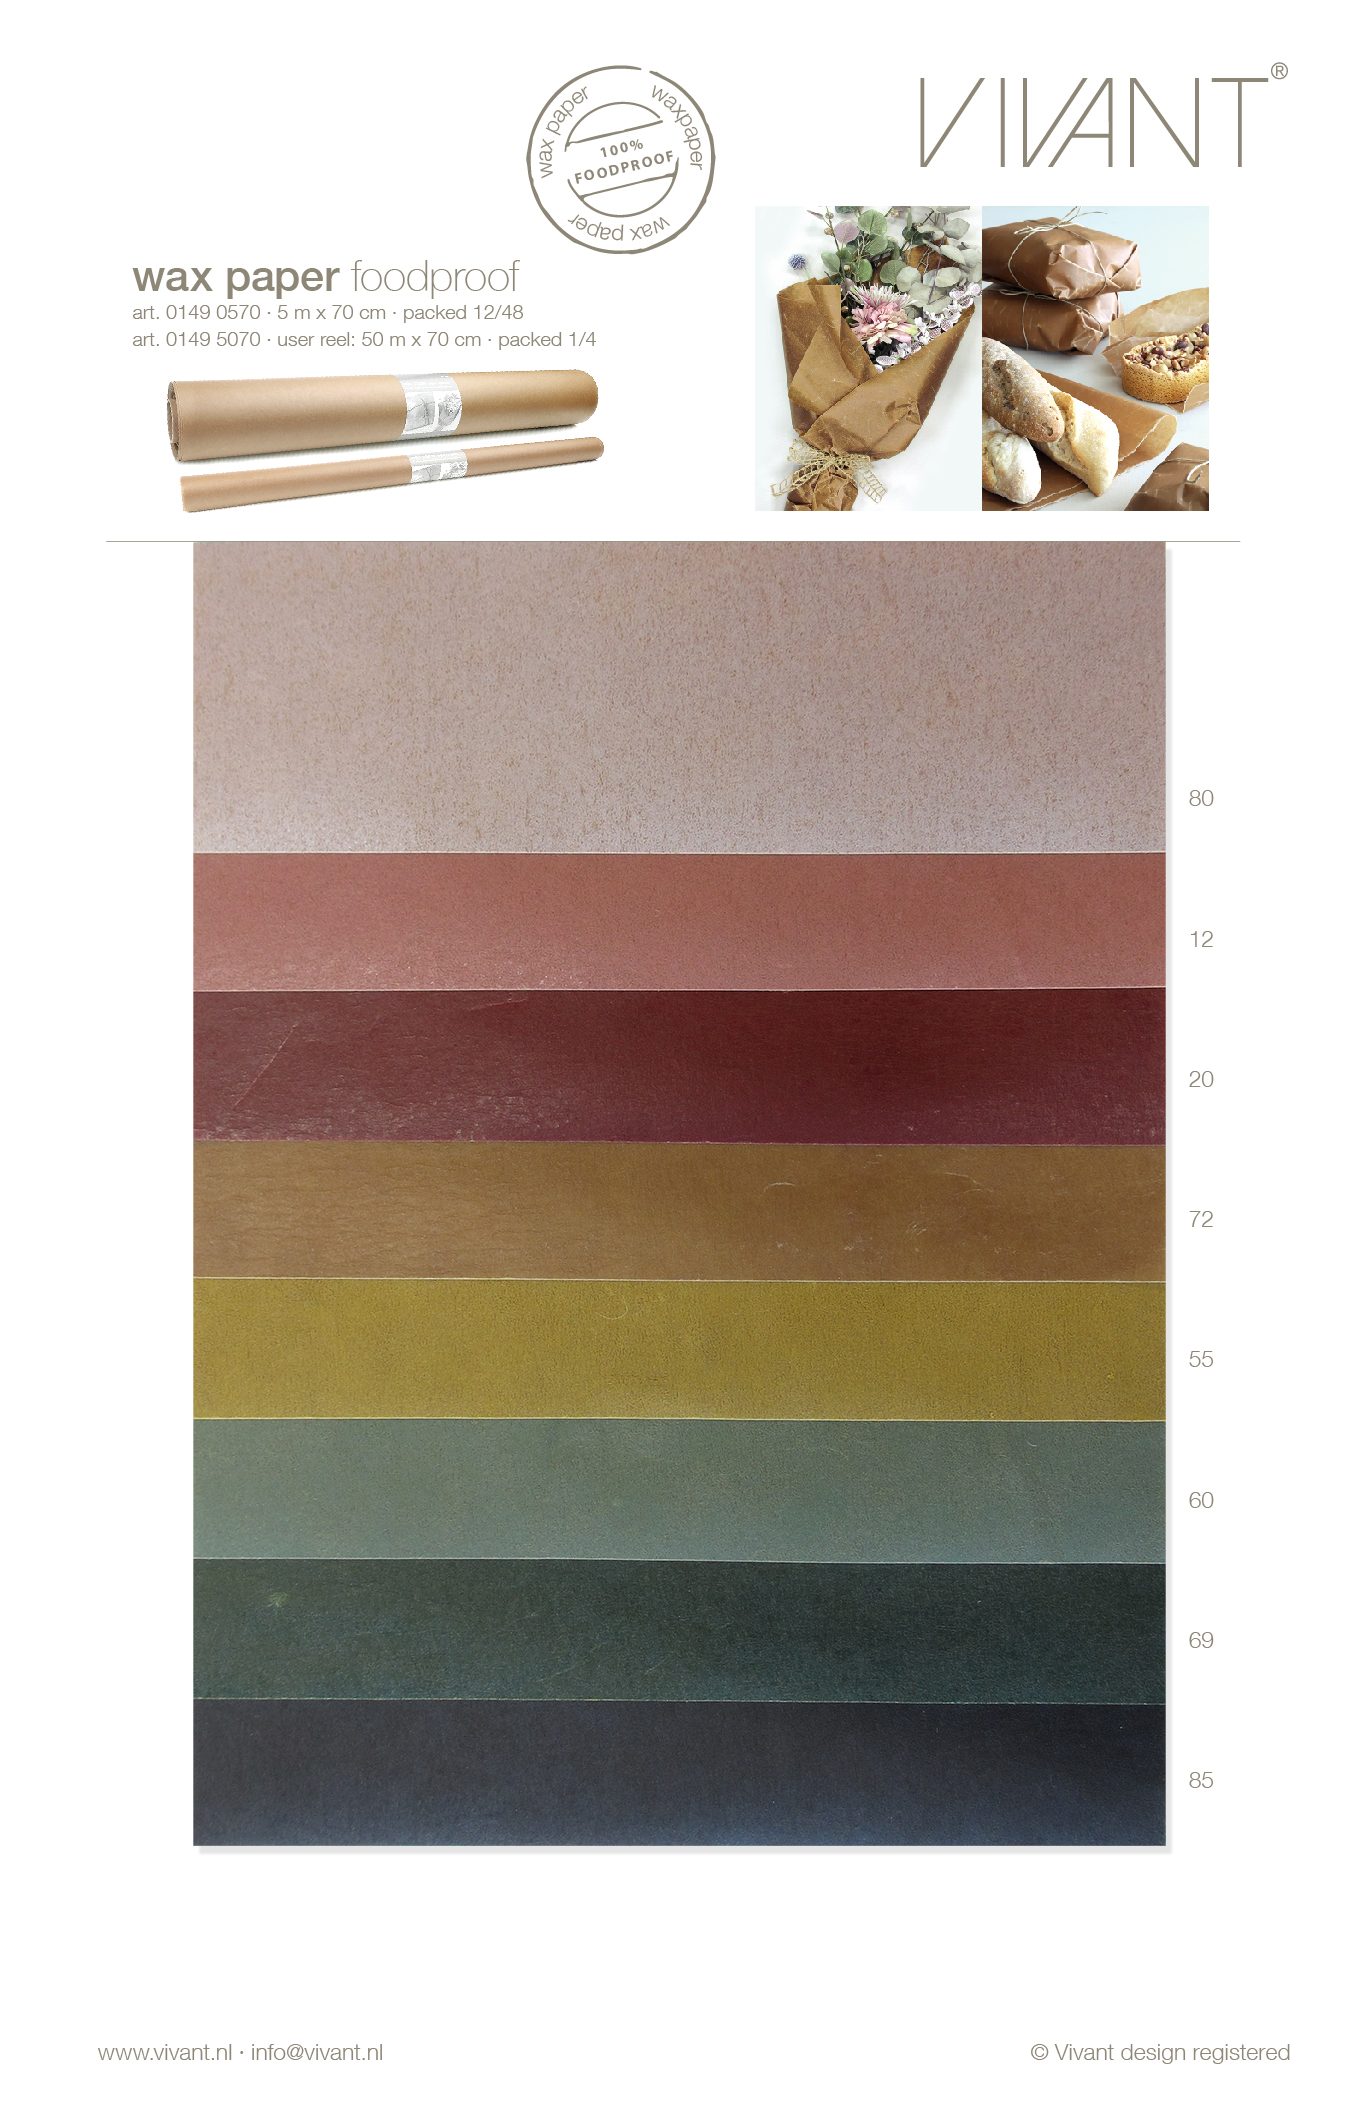 Wax paper as foodproof wrapping paper or flower paper with waterrepellent coating in 7 colors in 50 mtr and 5 mtr reels.